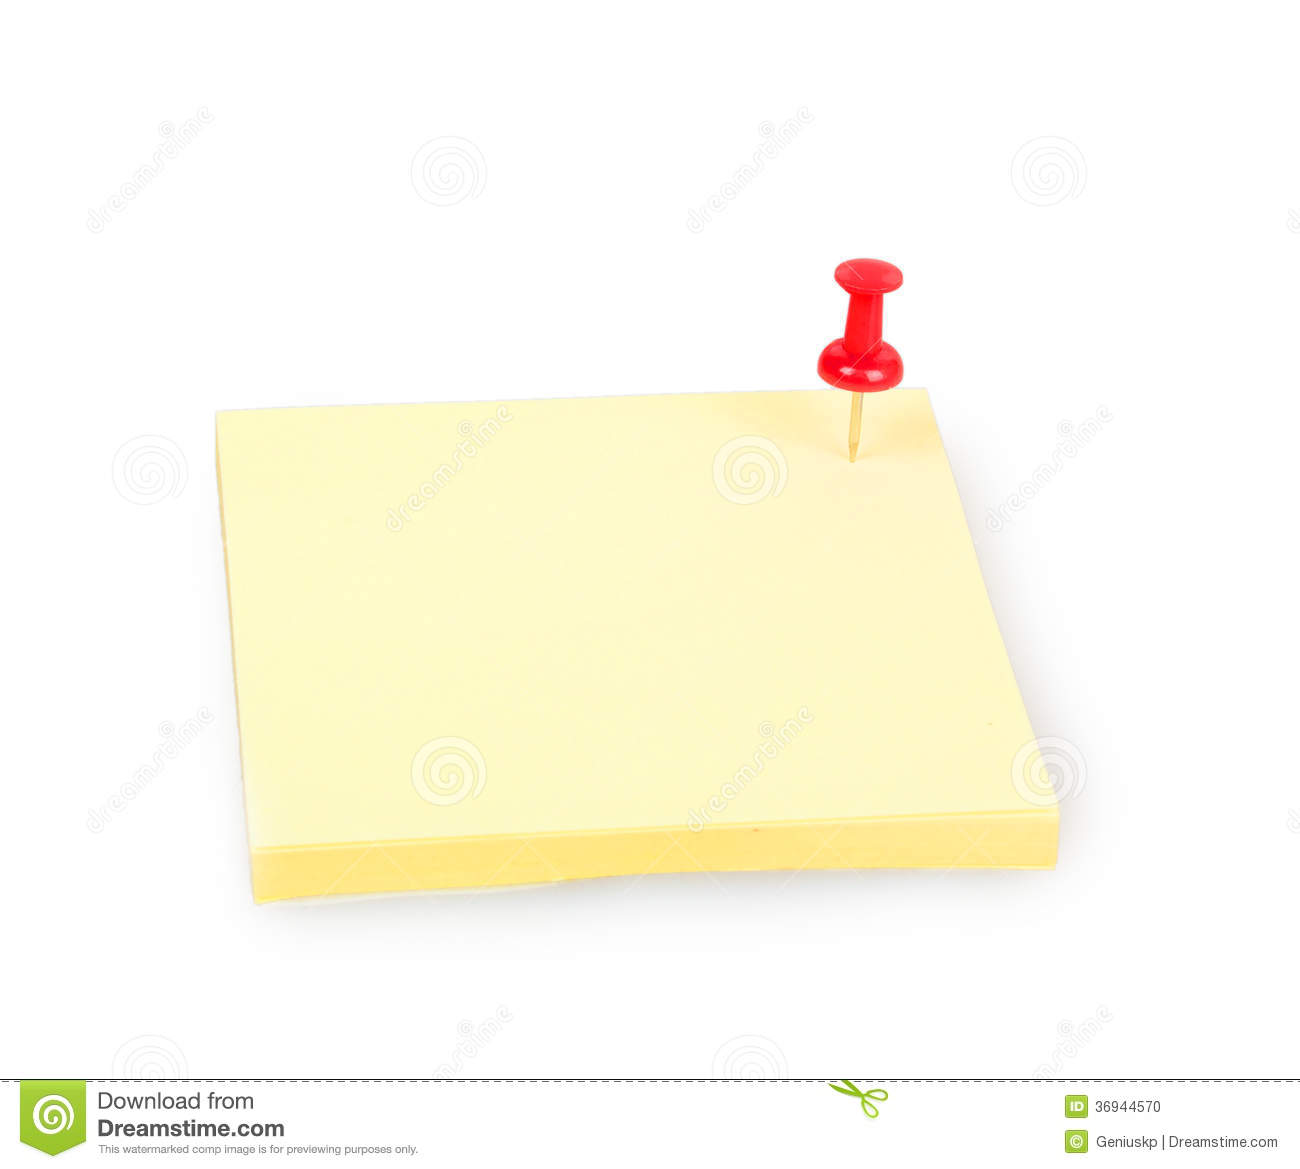 Blank yellow sticky note with red push pin